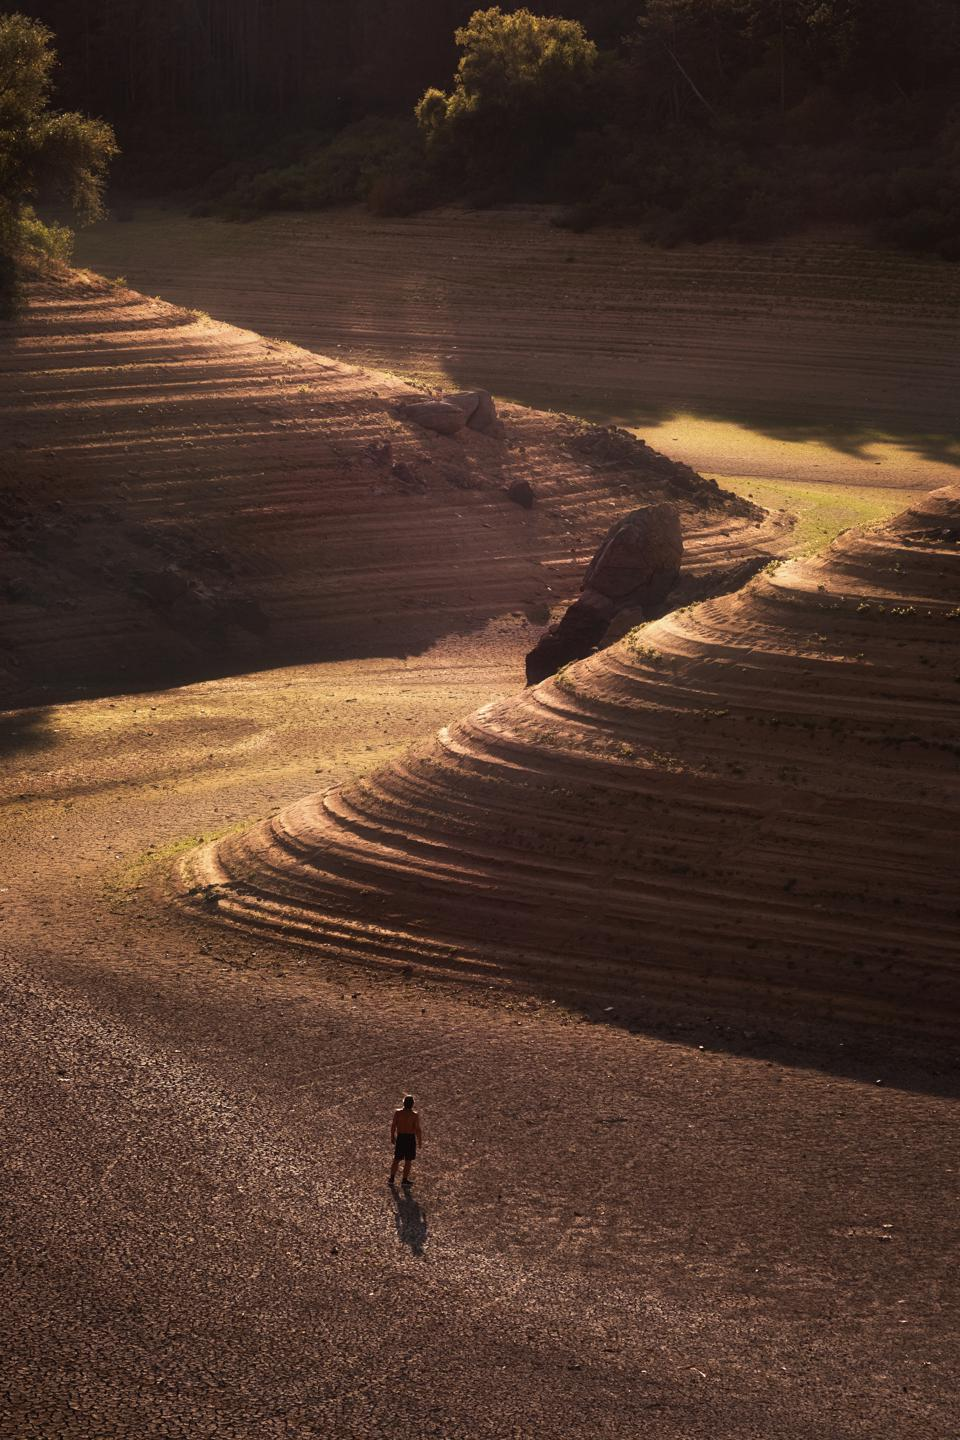 Sony World Photography Awards winning photo of rolling sand hills